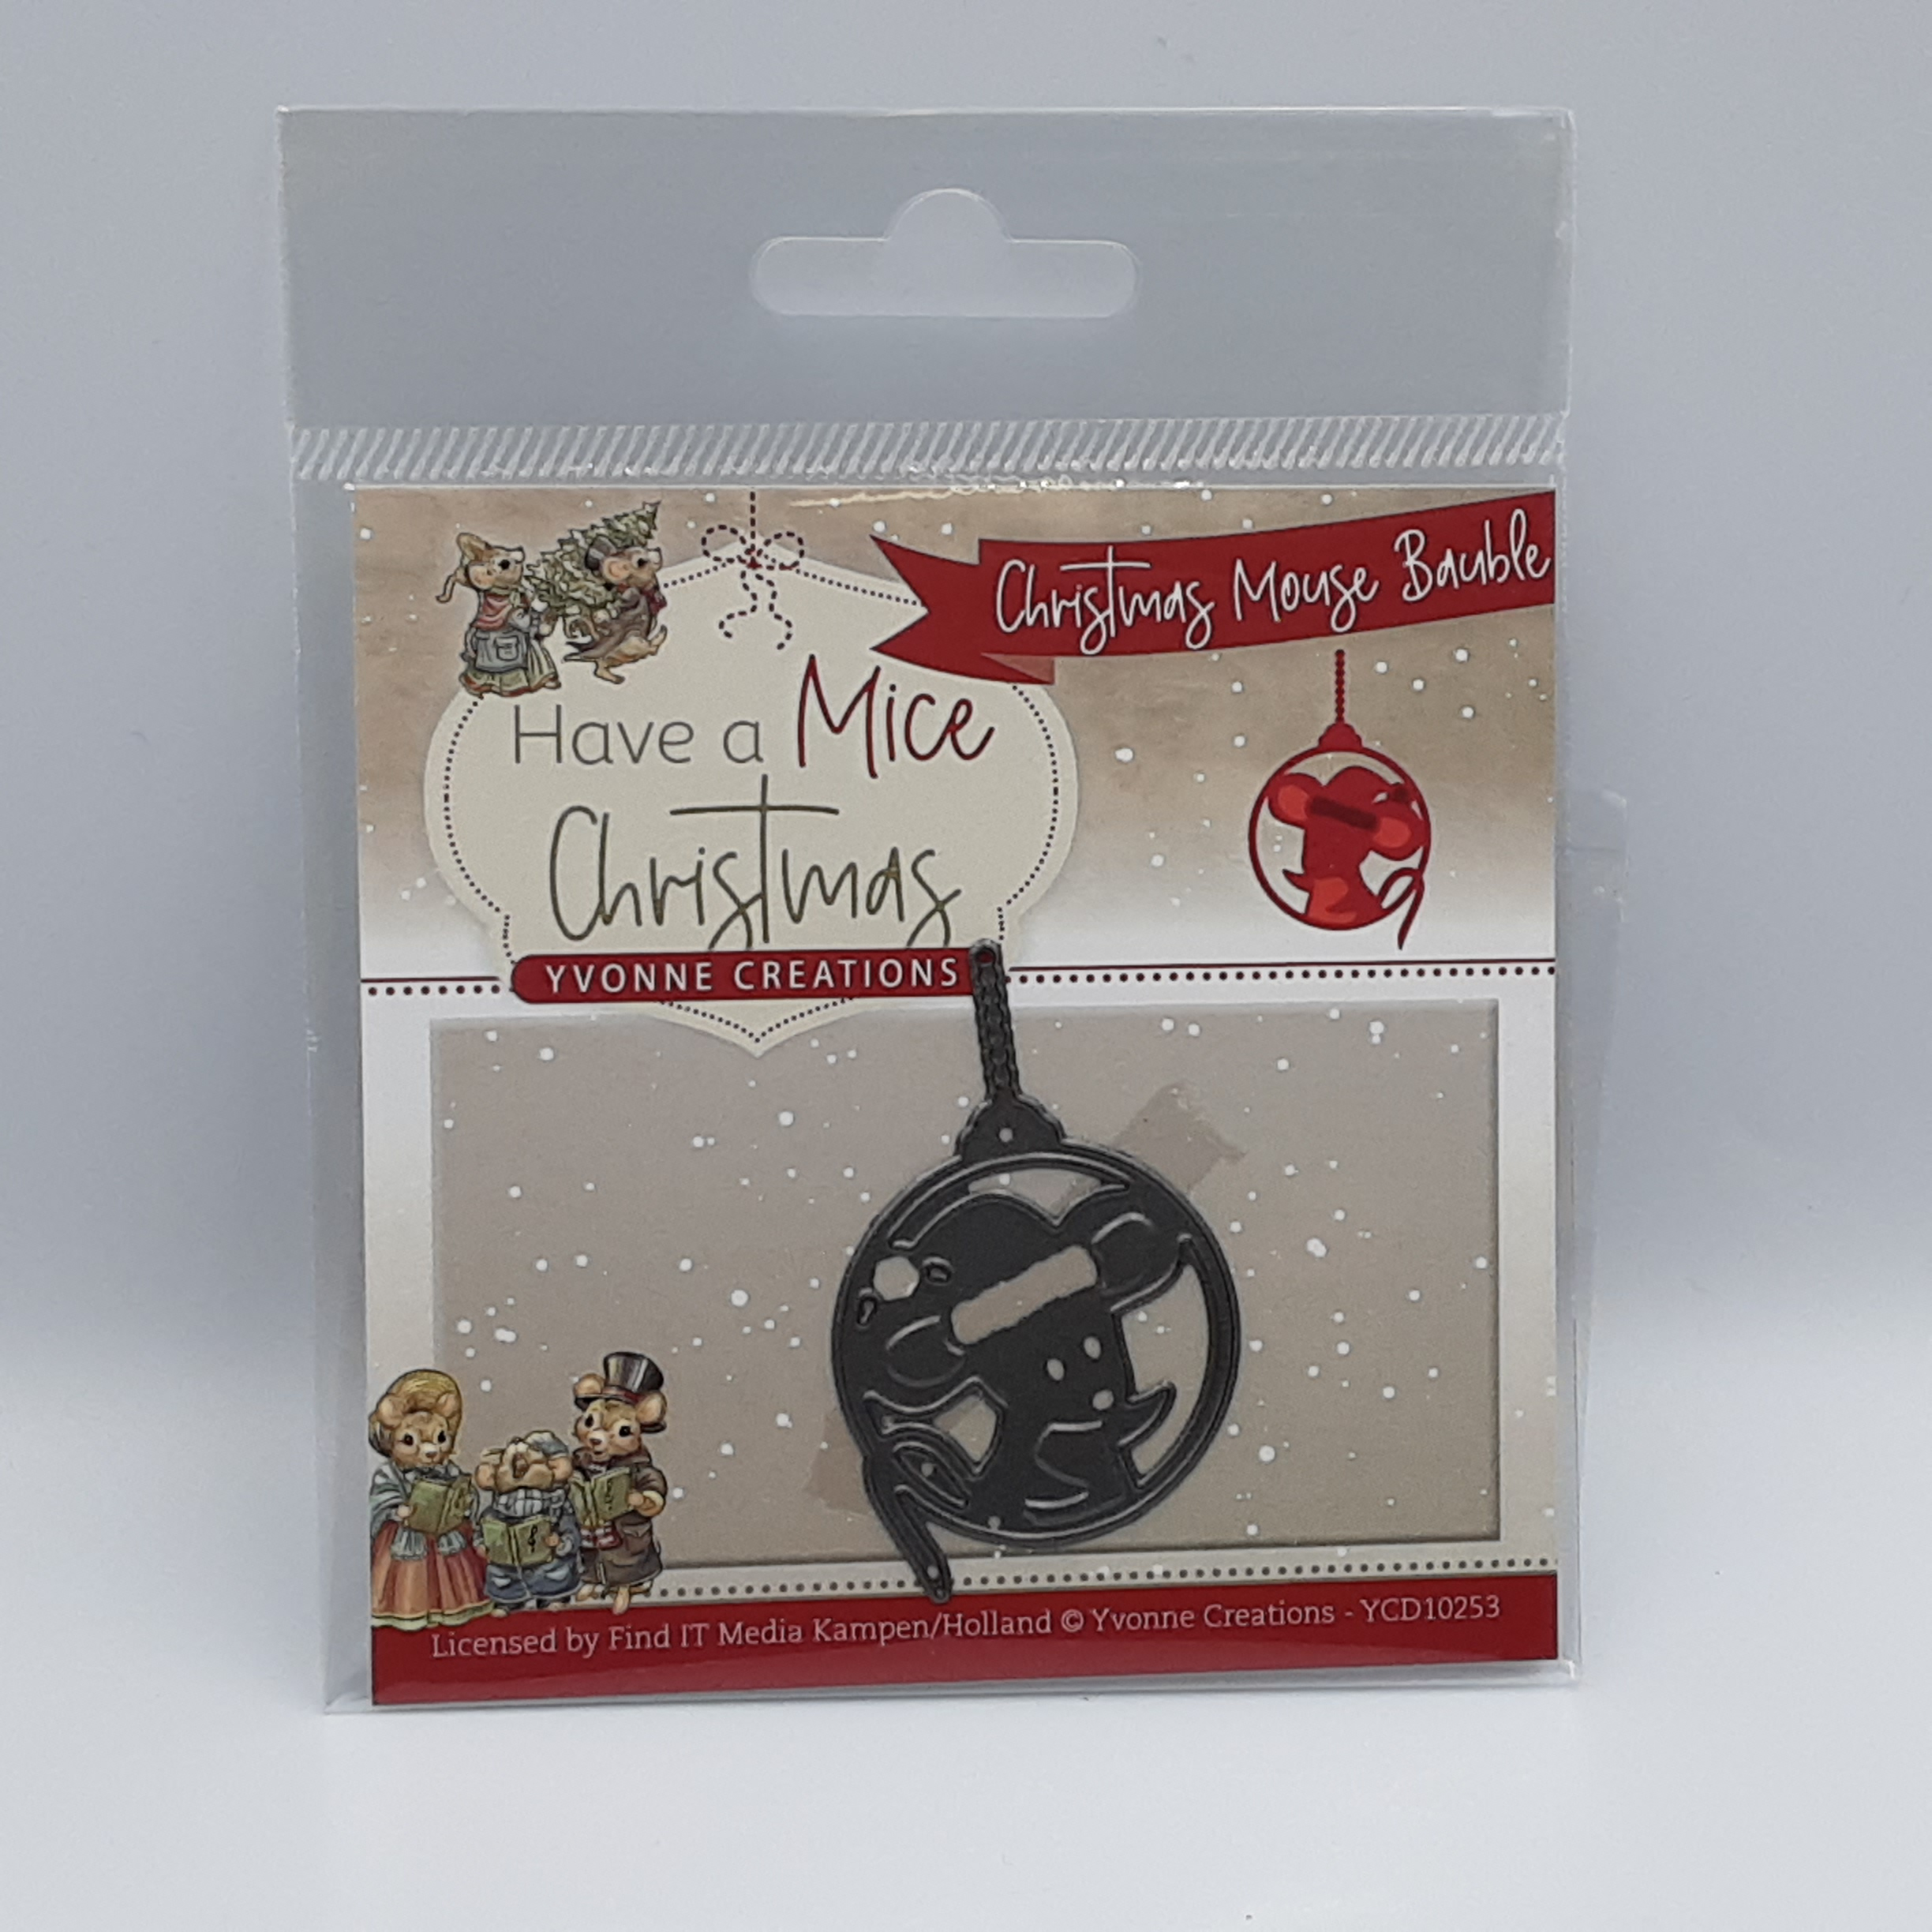 Christmas mouse bauble have a mice Christmas